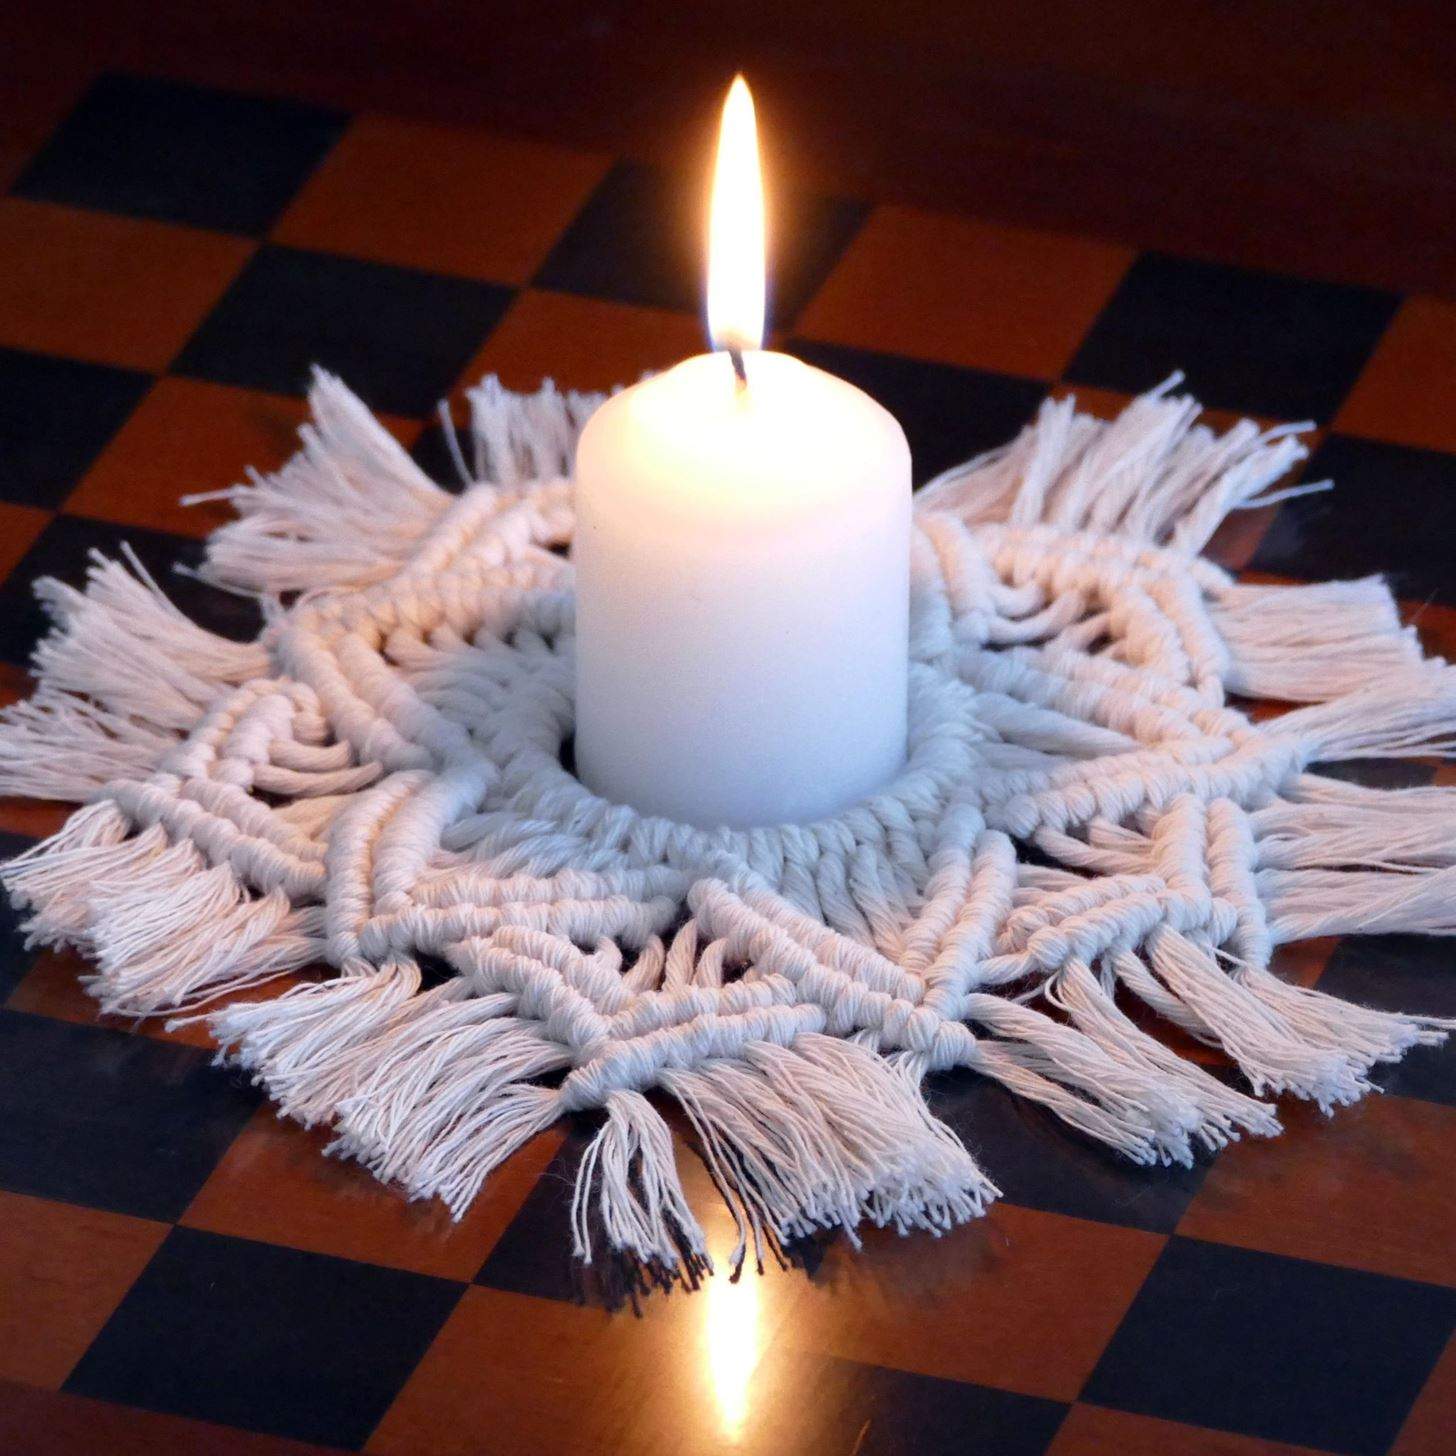 How To Make A Macrame Candle Mat